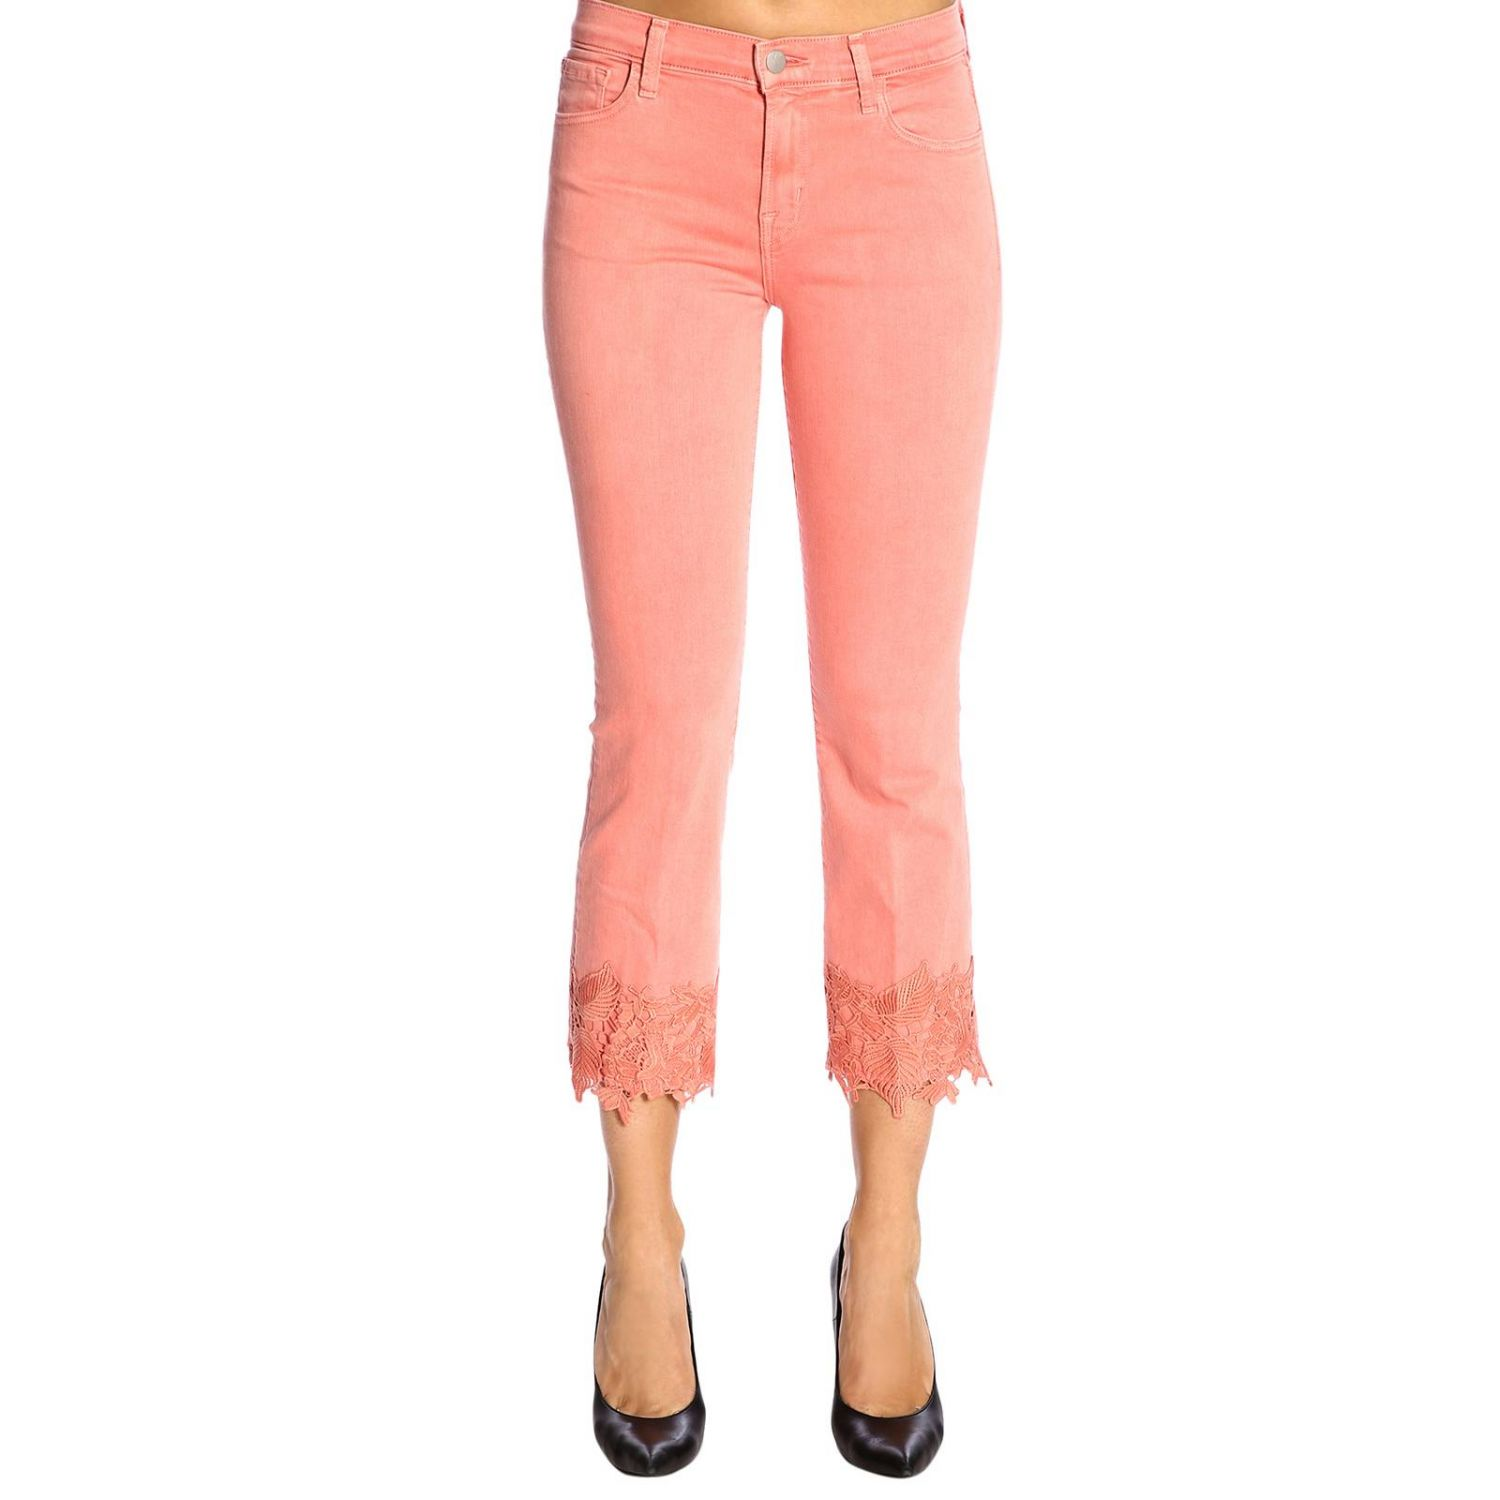 Jeans mujer J Brand rosa 1